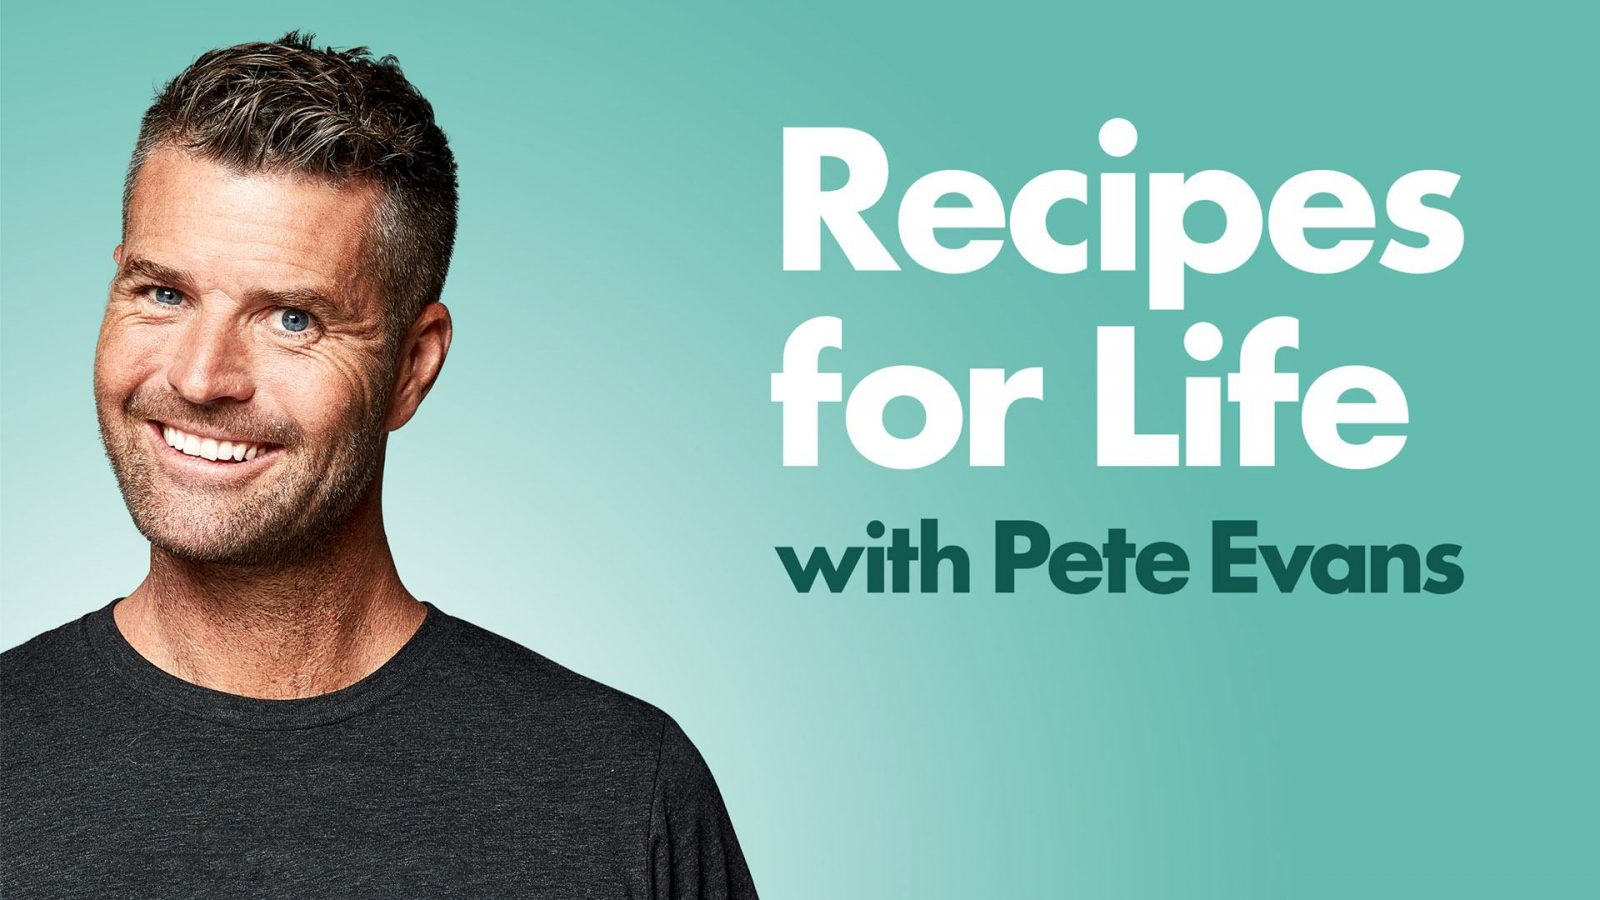 Pete Evans interviews Dr. Pawluk on Pulsed Electromagnetic Field therapy